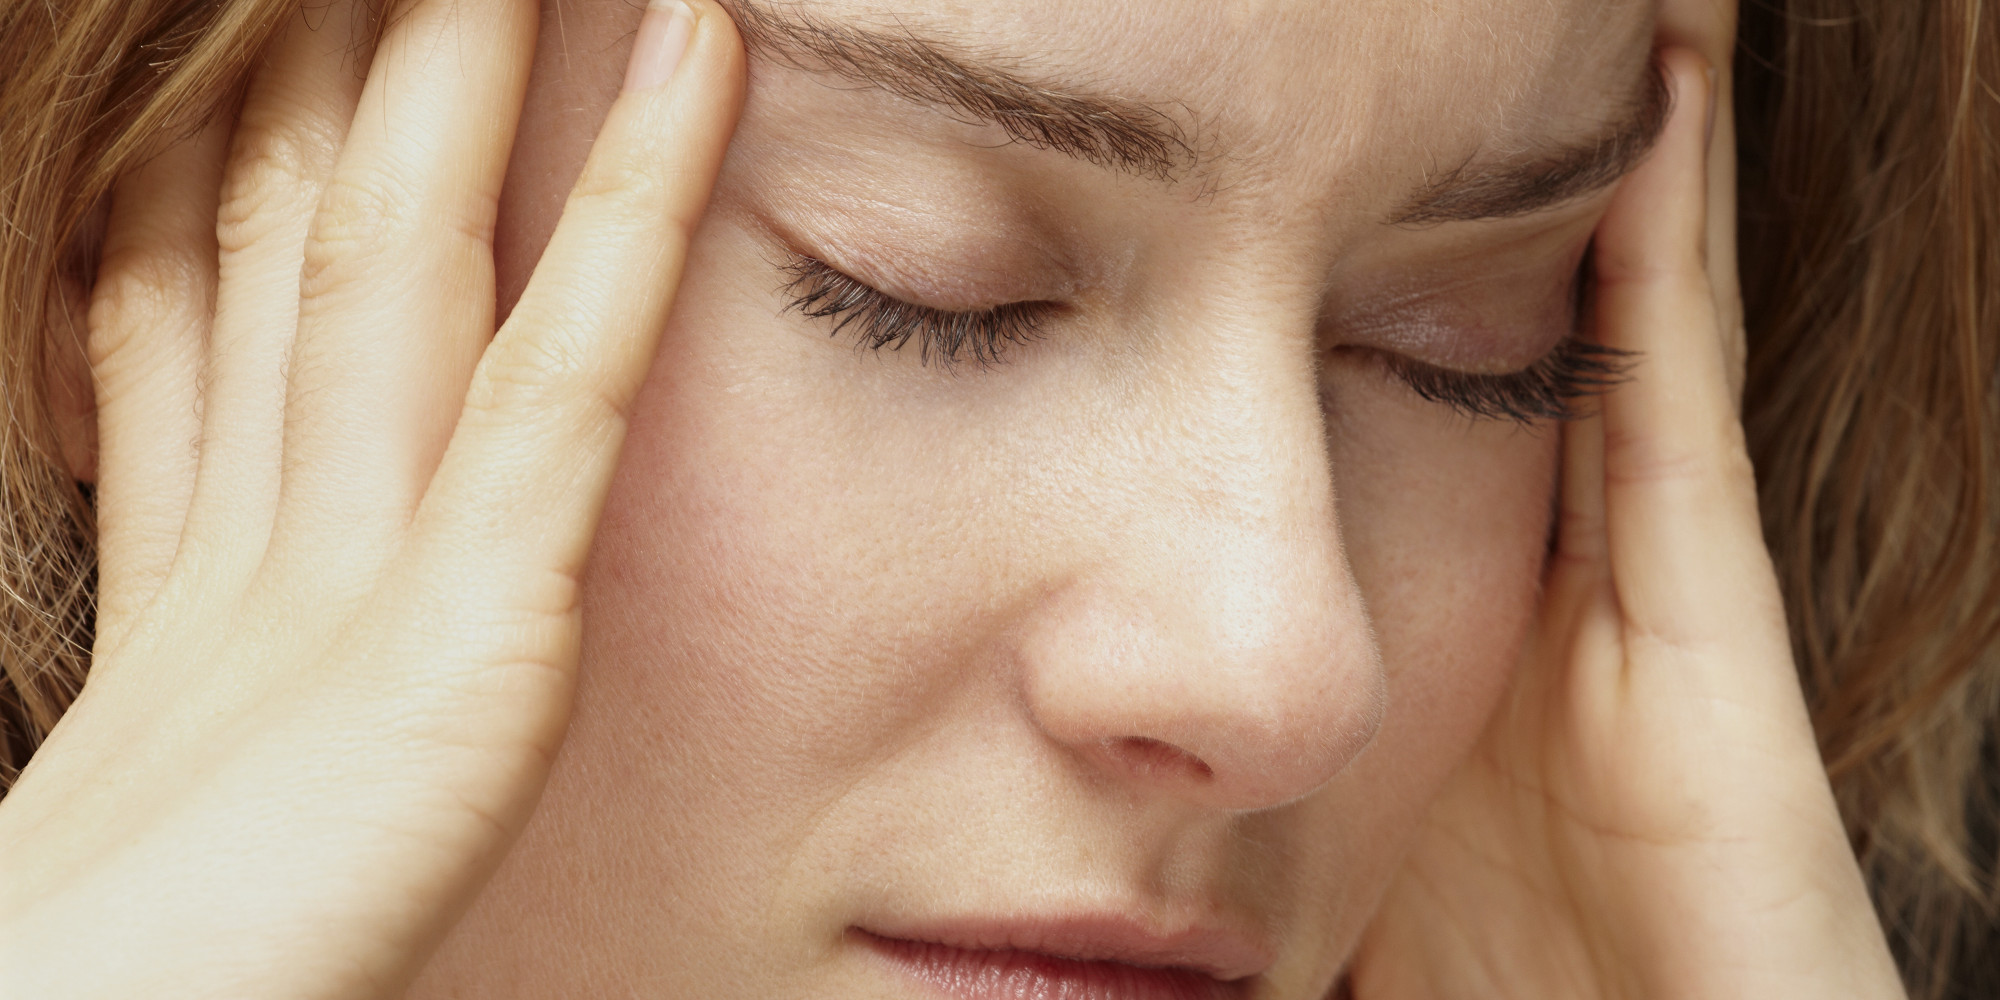 FDA Permits Marketing Of First Device To Prevent Migraines